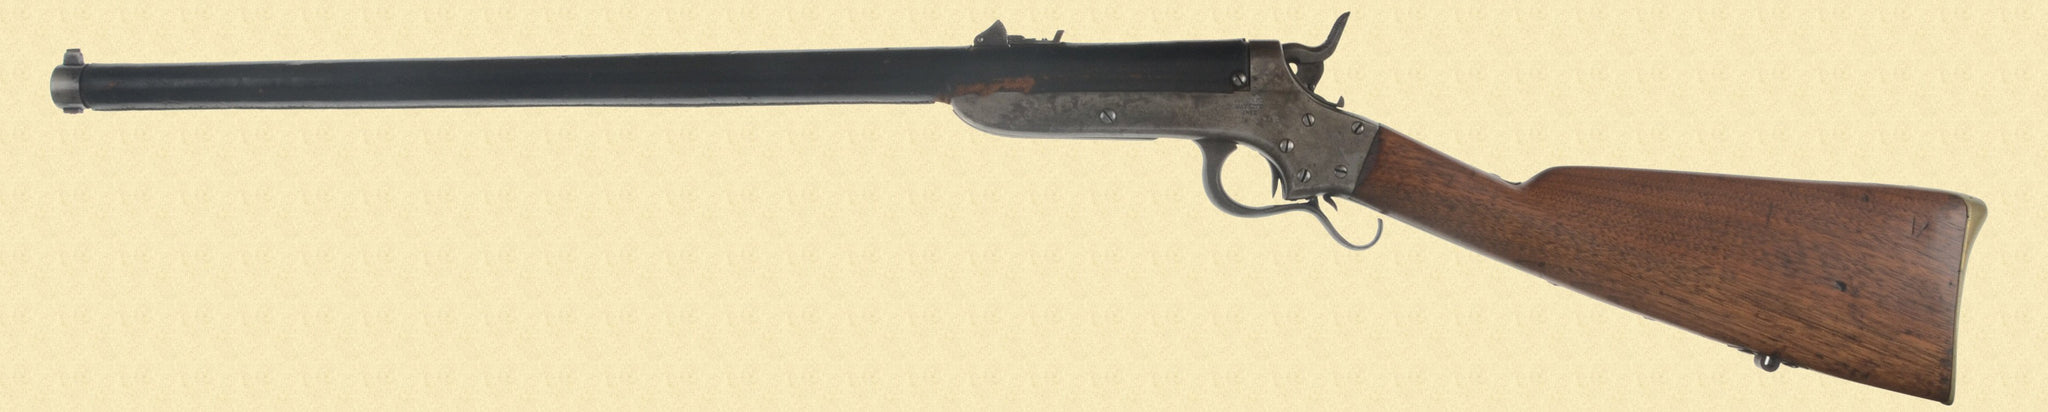 SHARPS & HANKINS 1862 CARBINE